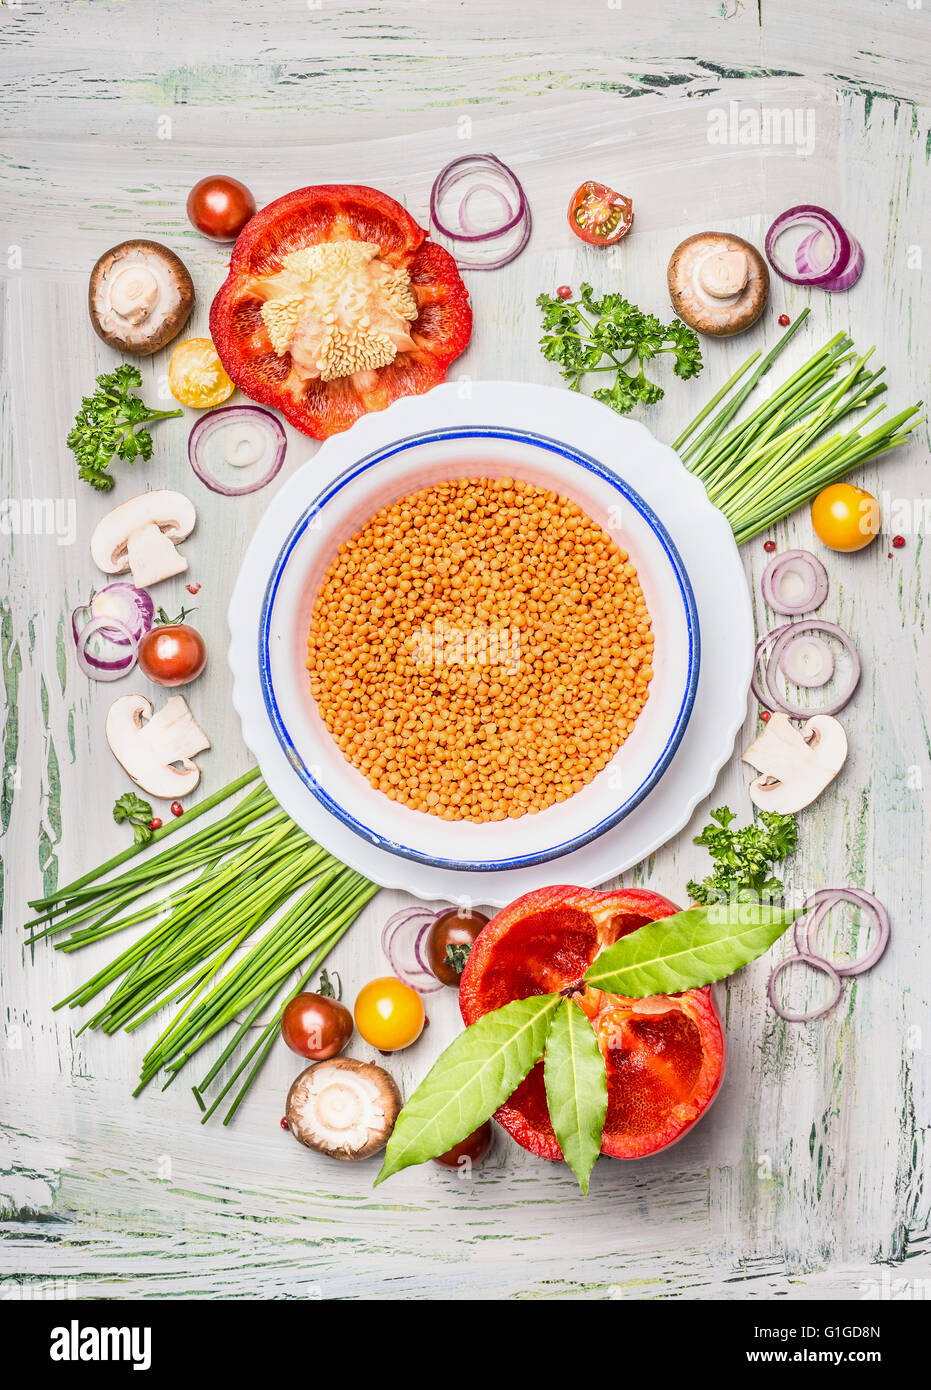 Red lentil in bowl and vegetables ingredients for healthy vegetarian cooking, top view composing. - Stock Image